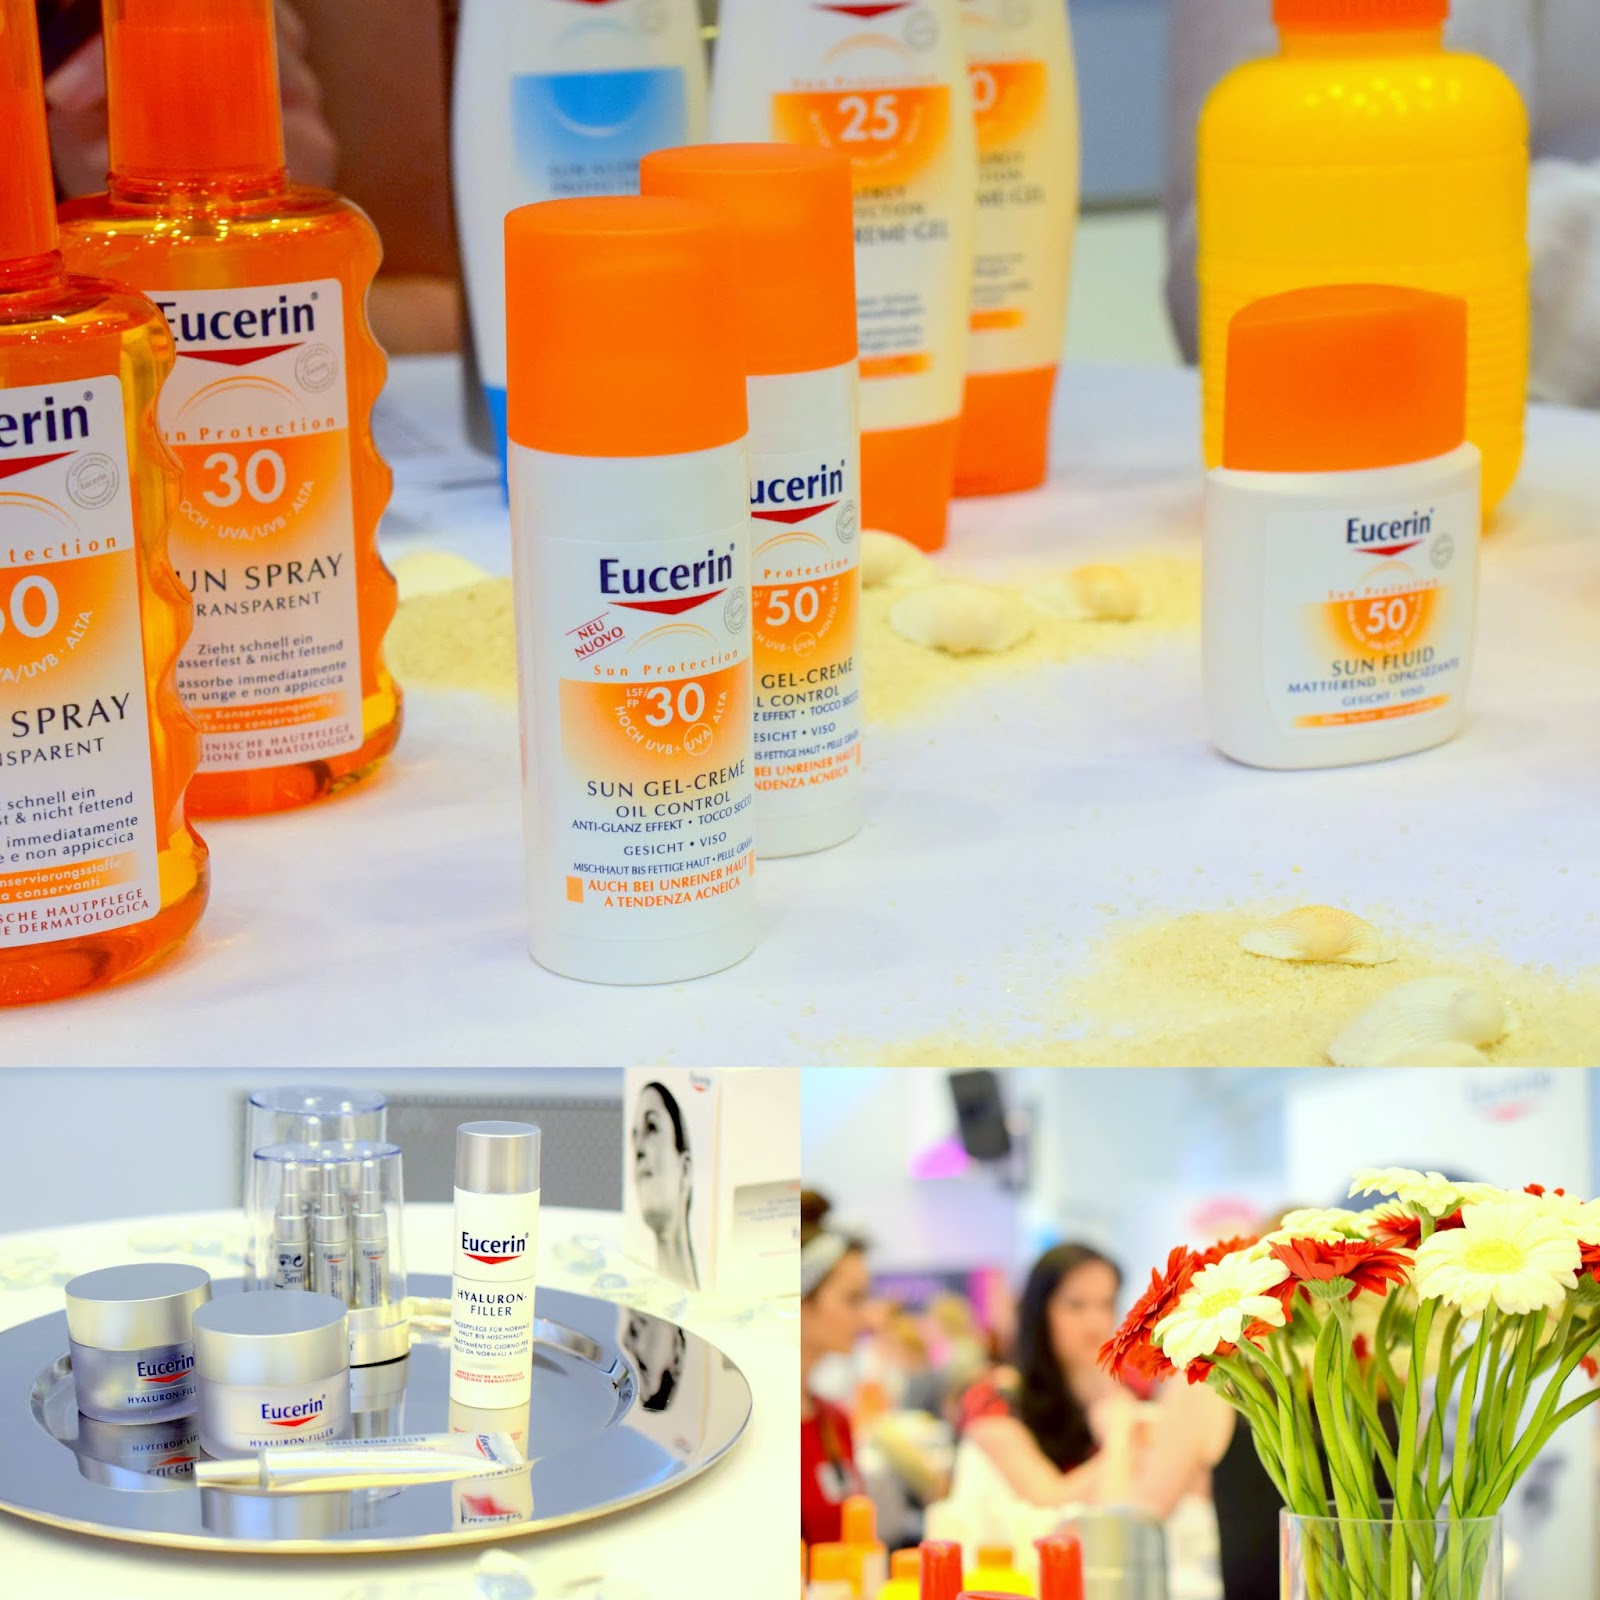 Beautypress Bloggerevent Juni 2015: Eucerin